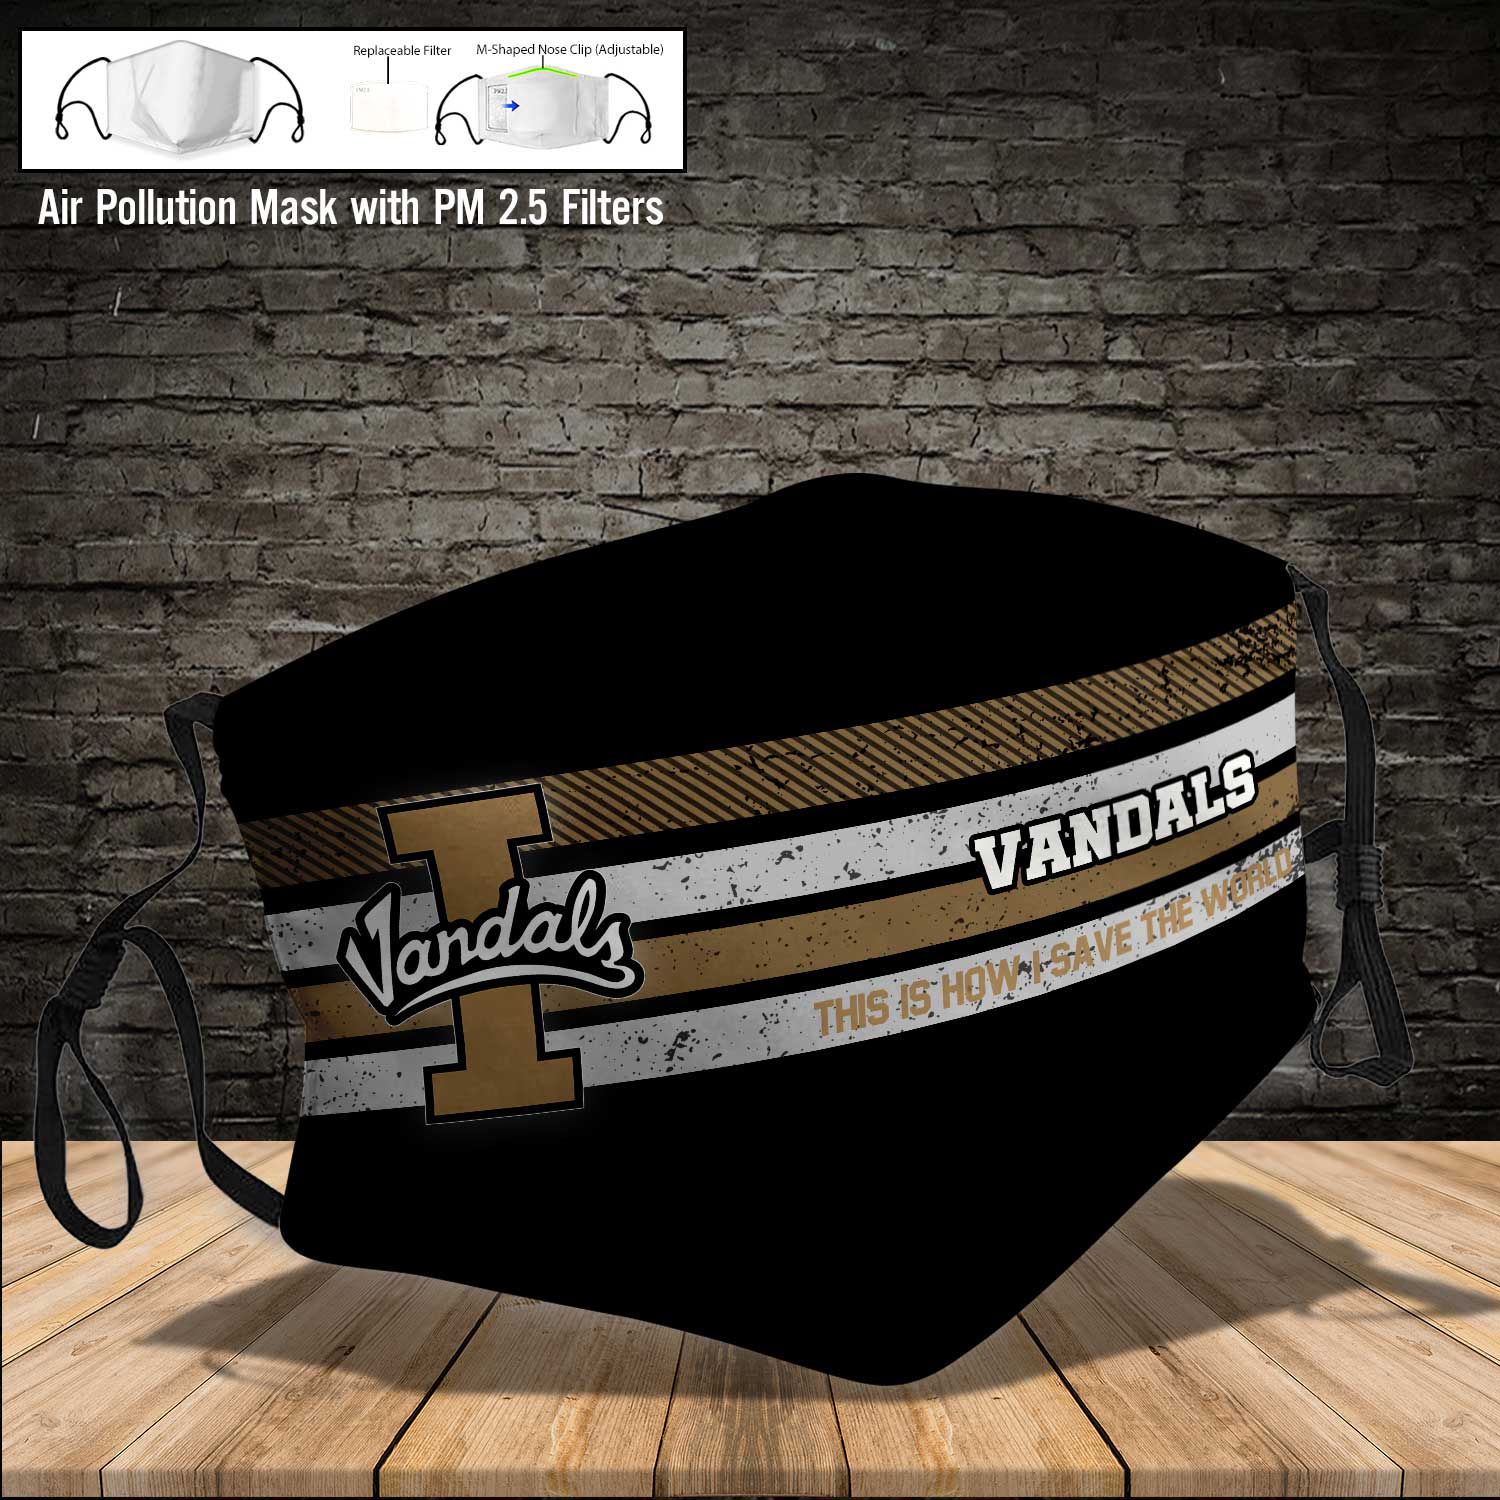 Idaho vandals this is how i save the world full printing face mask 3